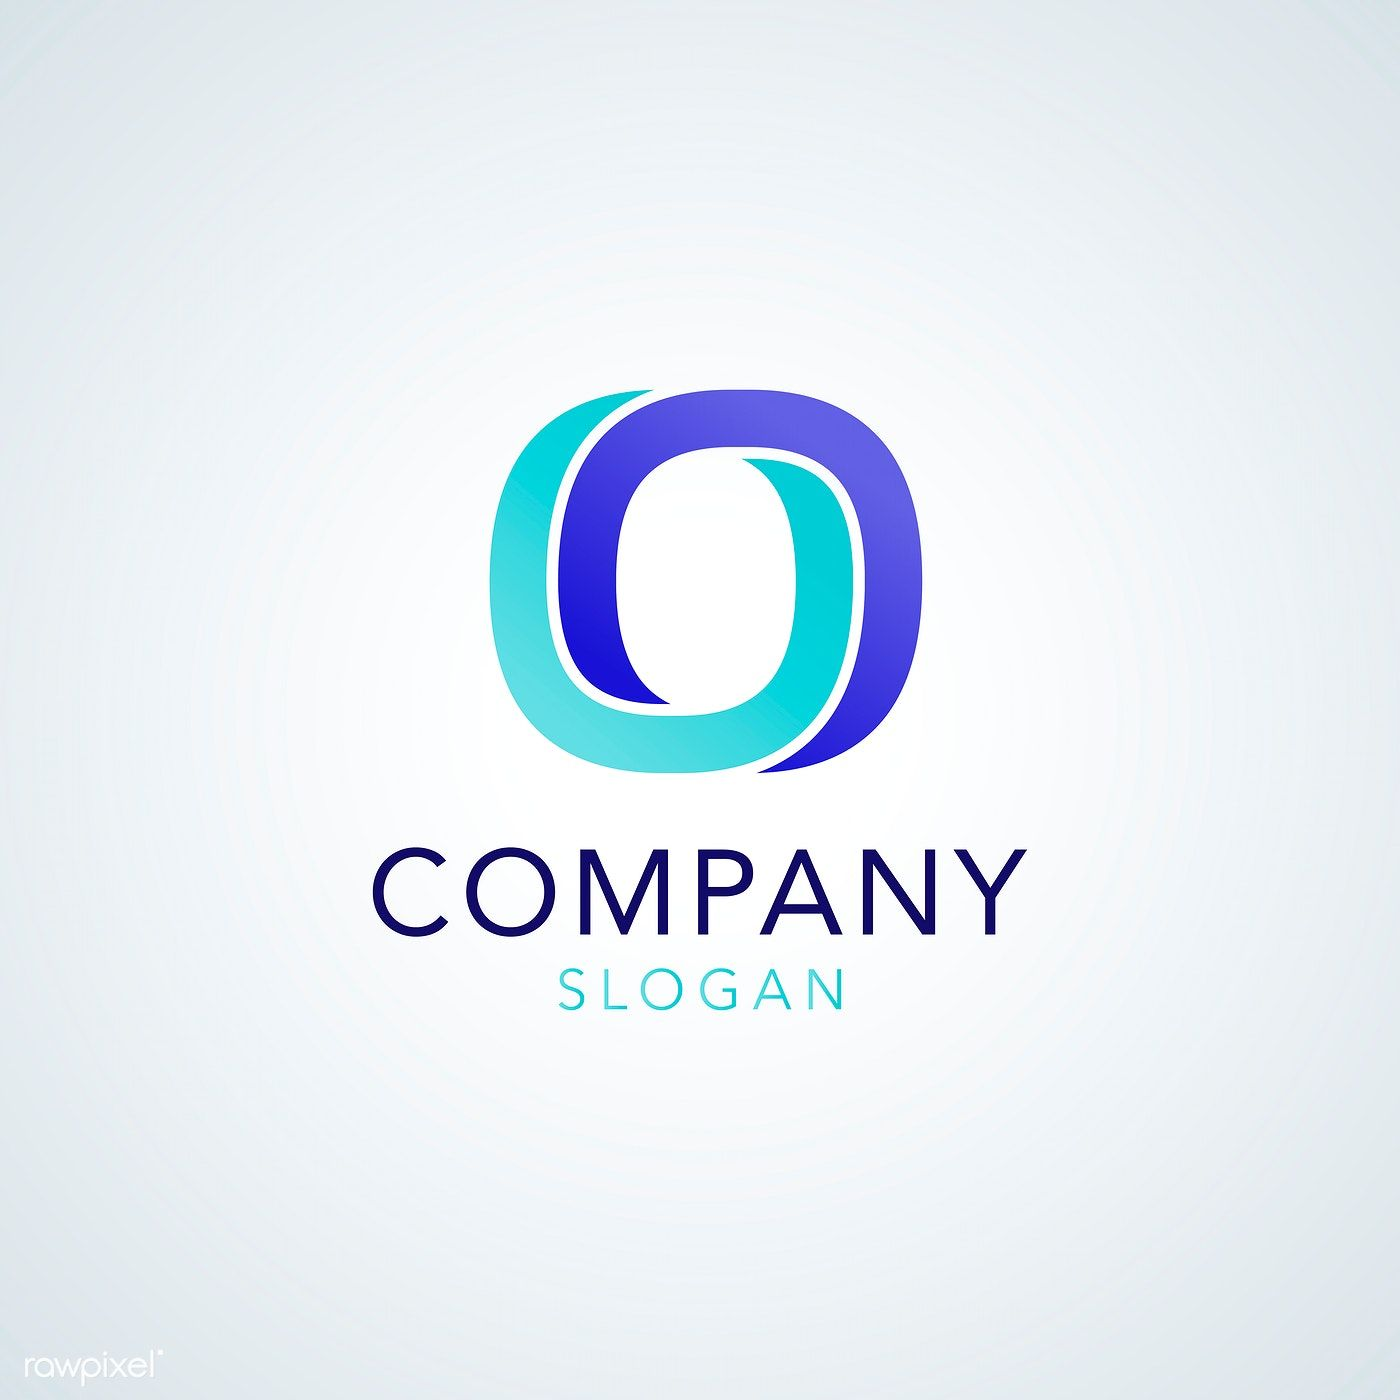 Download Premium Illustration Of Blue Creative Company Slogan